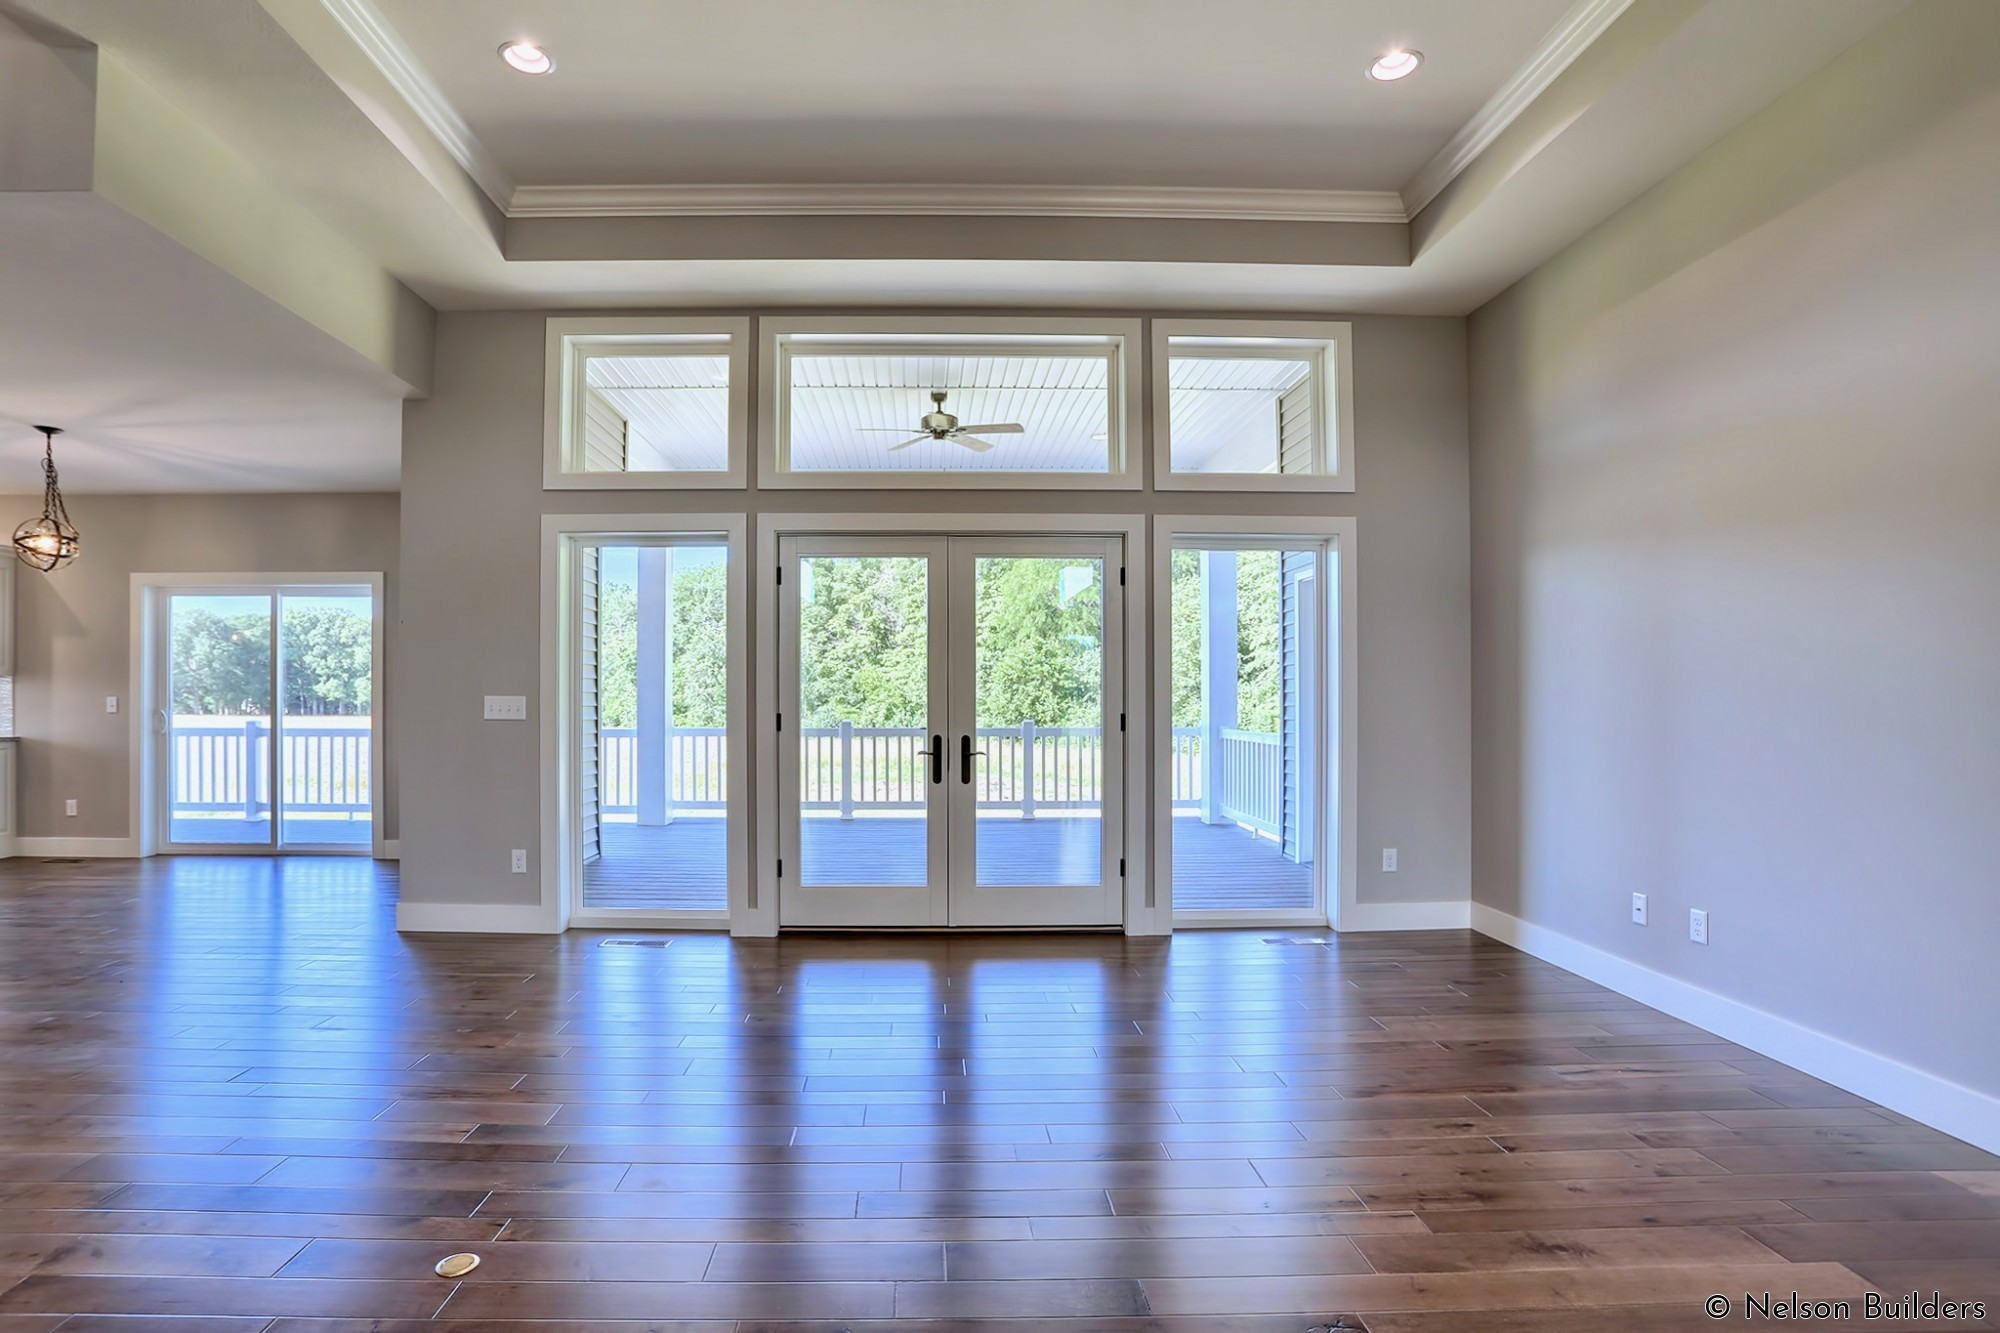 The abundance of transom windows on both the front and back allow for plenty of natural light, even with the large covered porch.